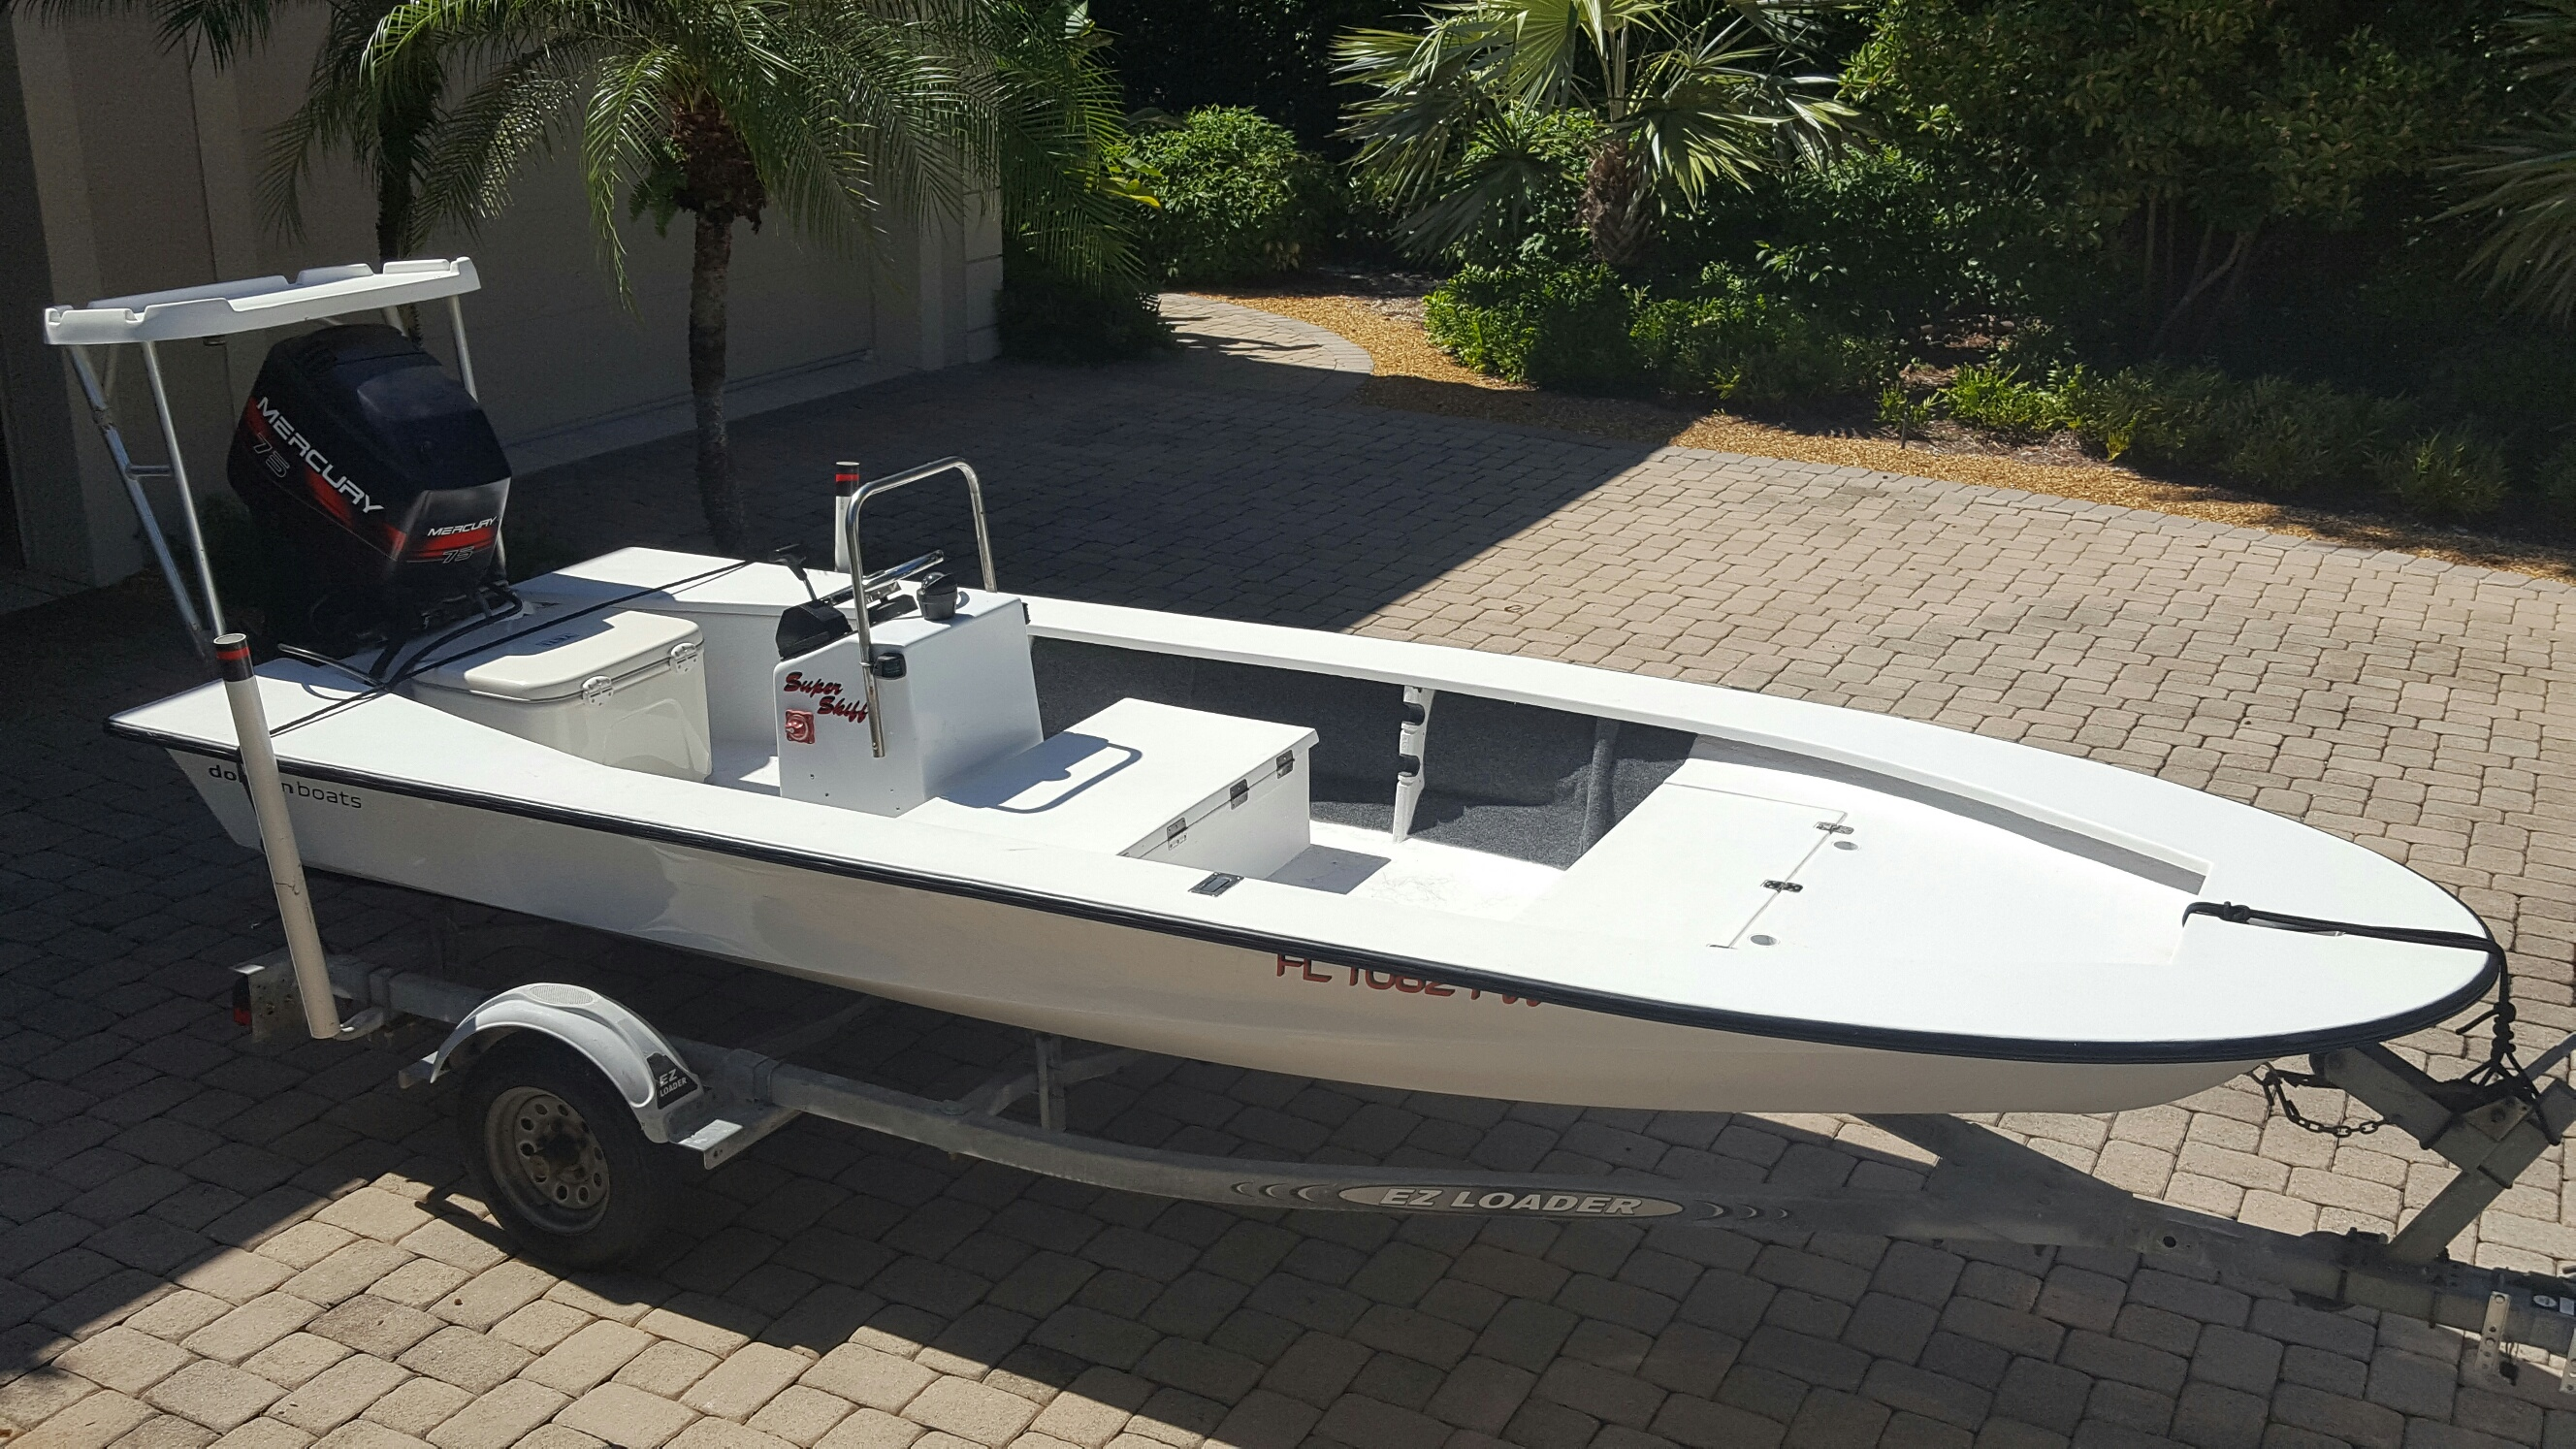 Skiffs For Sale >> Sold Expired Super Skiff For Sale Nice Simple Shallow